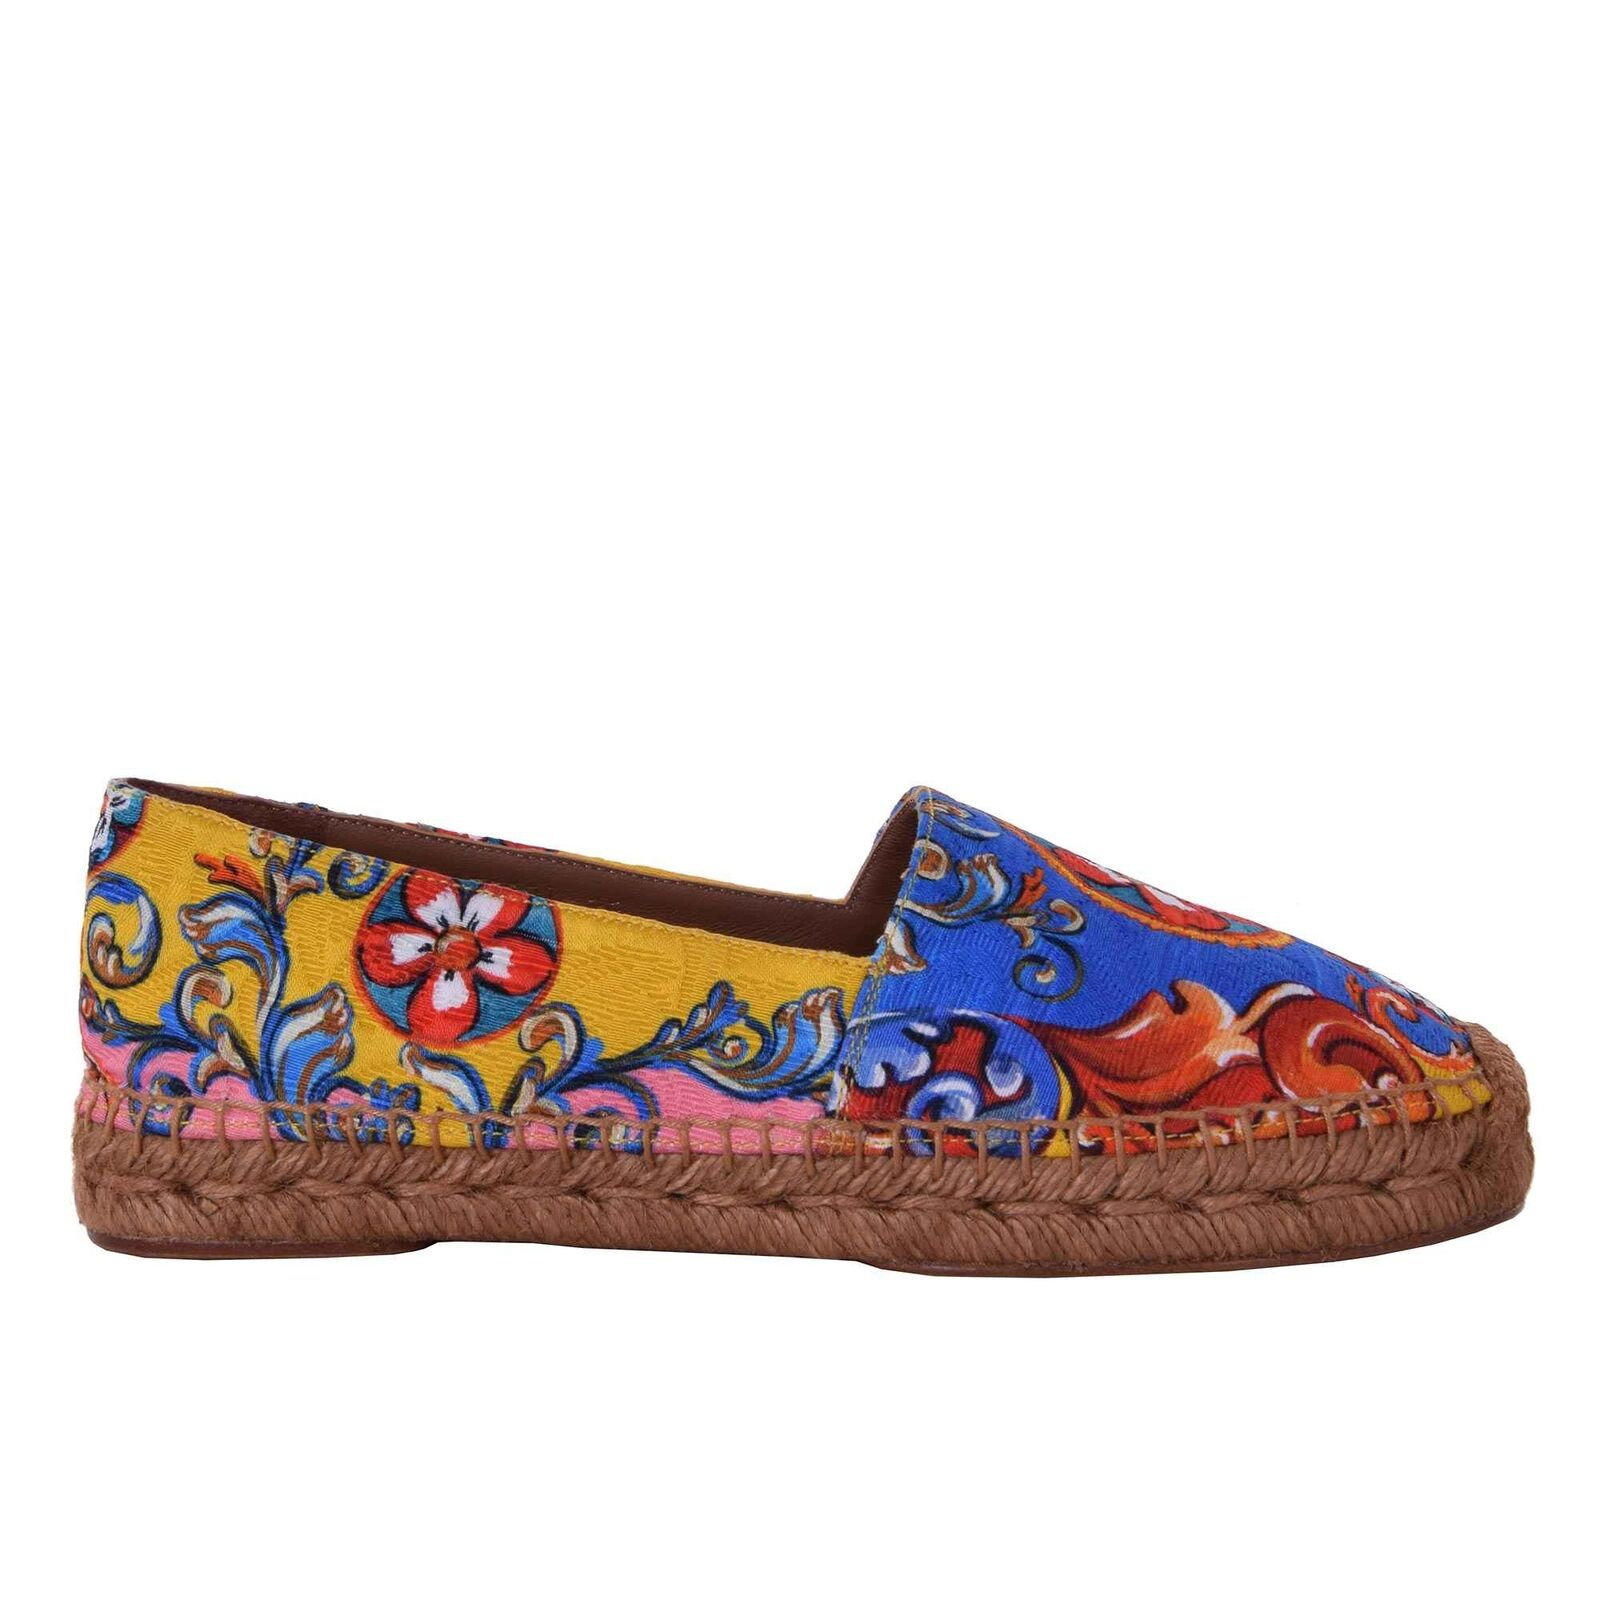 DOLCE & GABBANA Carretto Sicily Canvas Espadrilles Schuhe Mehrfarbig Shoes 06718